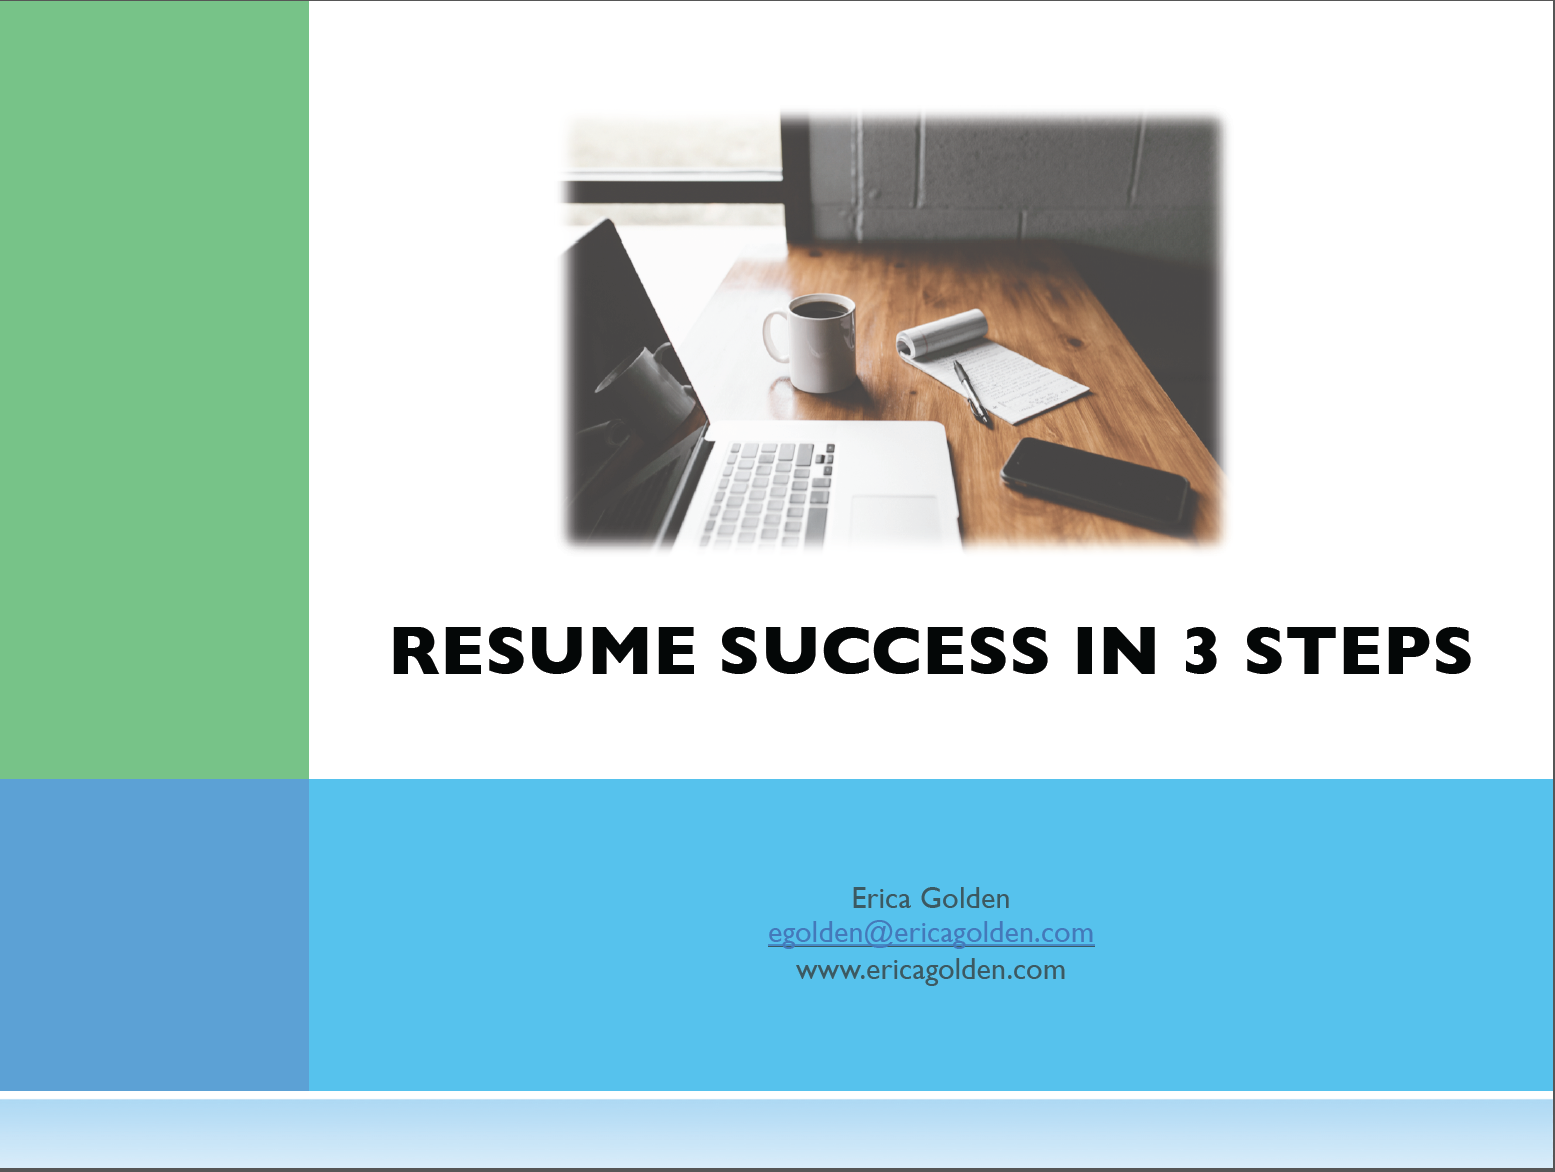 Resumes Success in 3 Steps.png